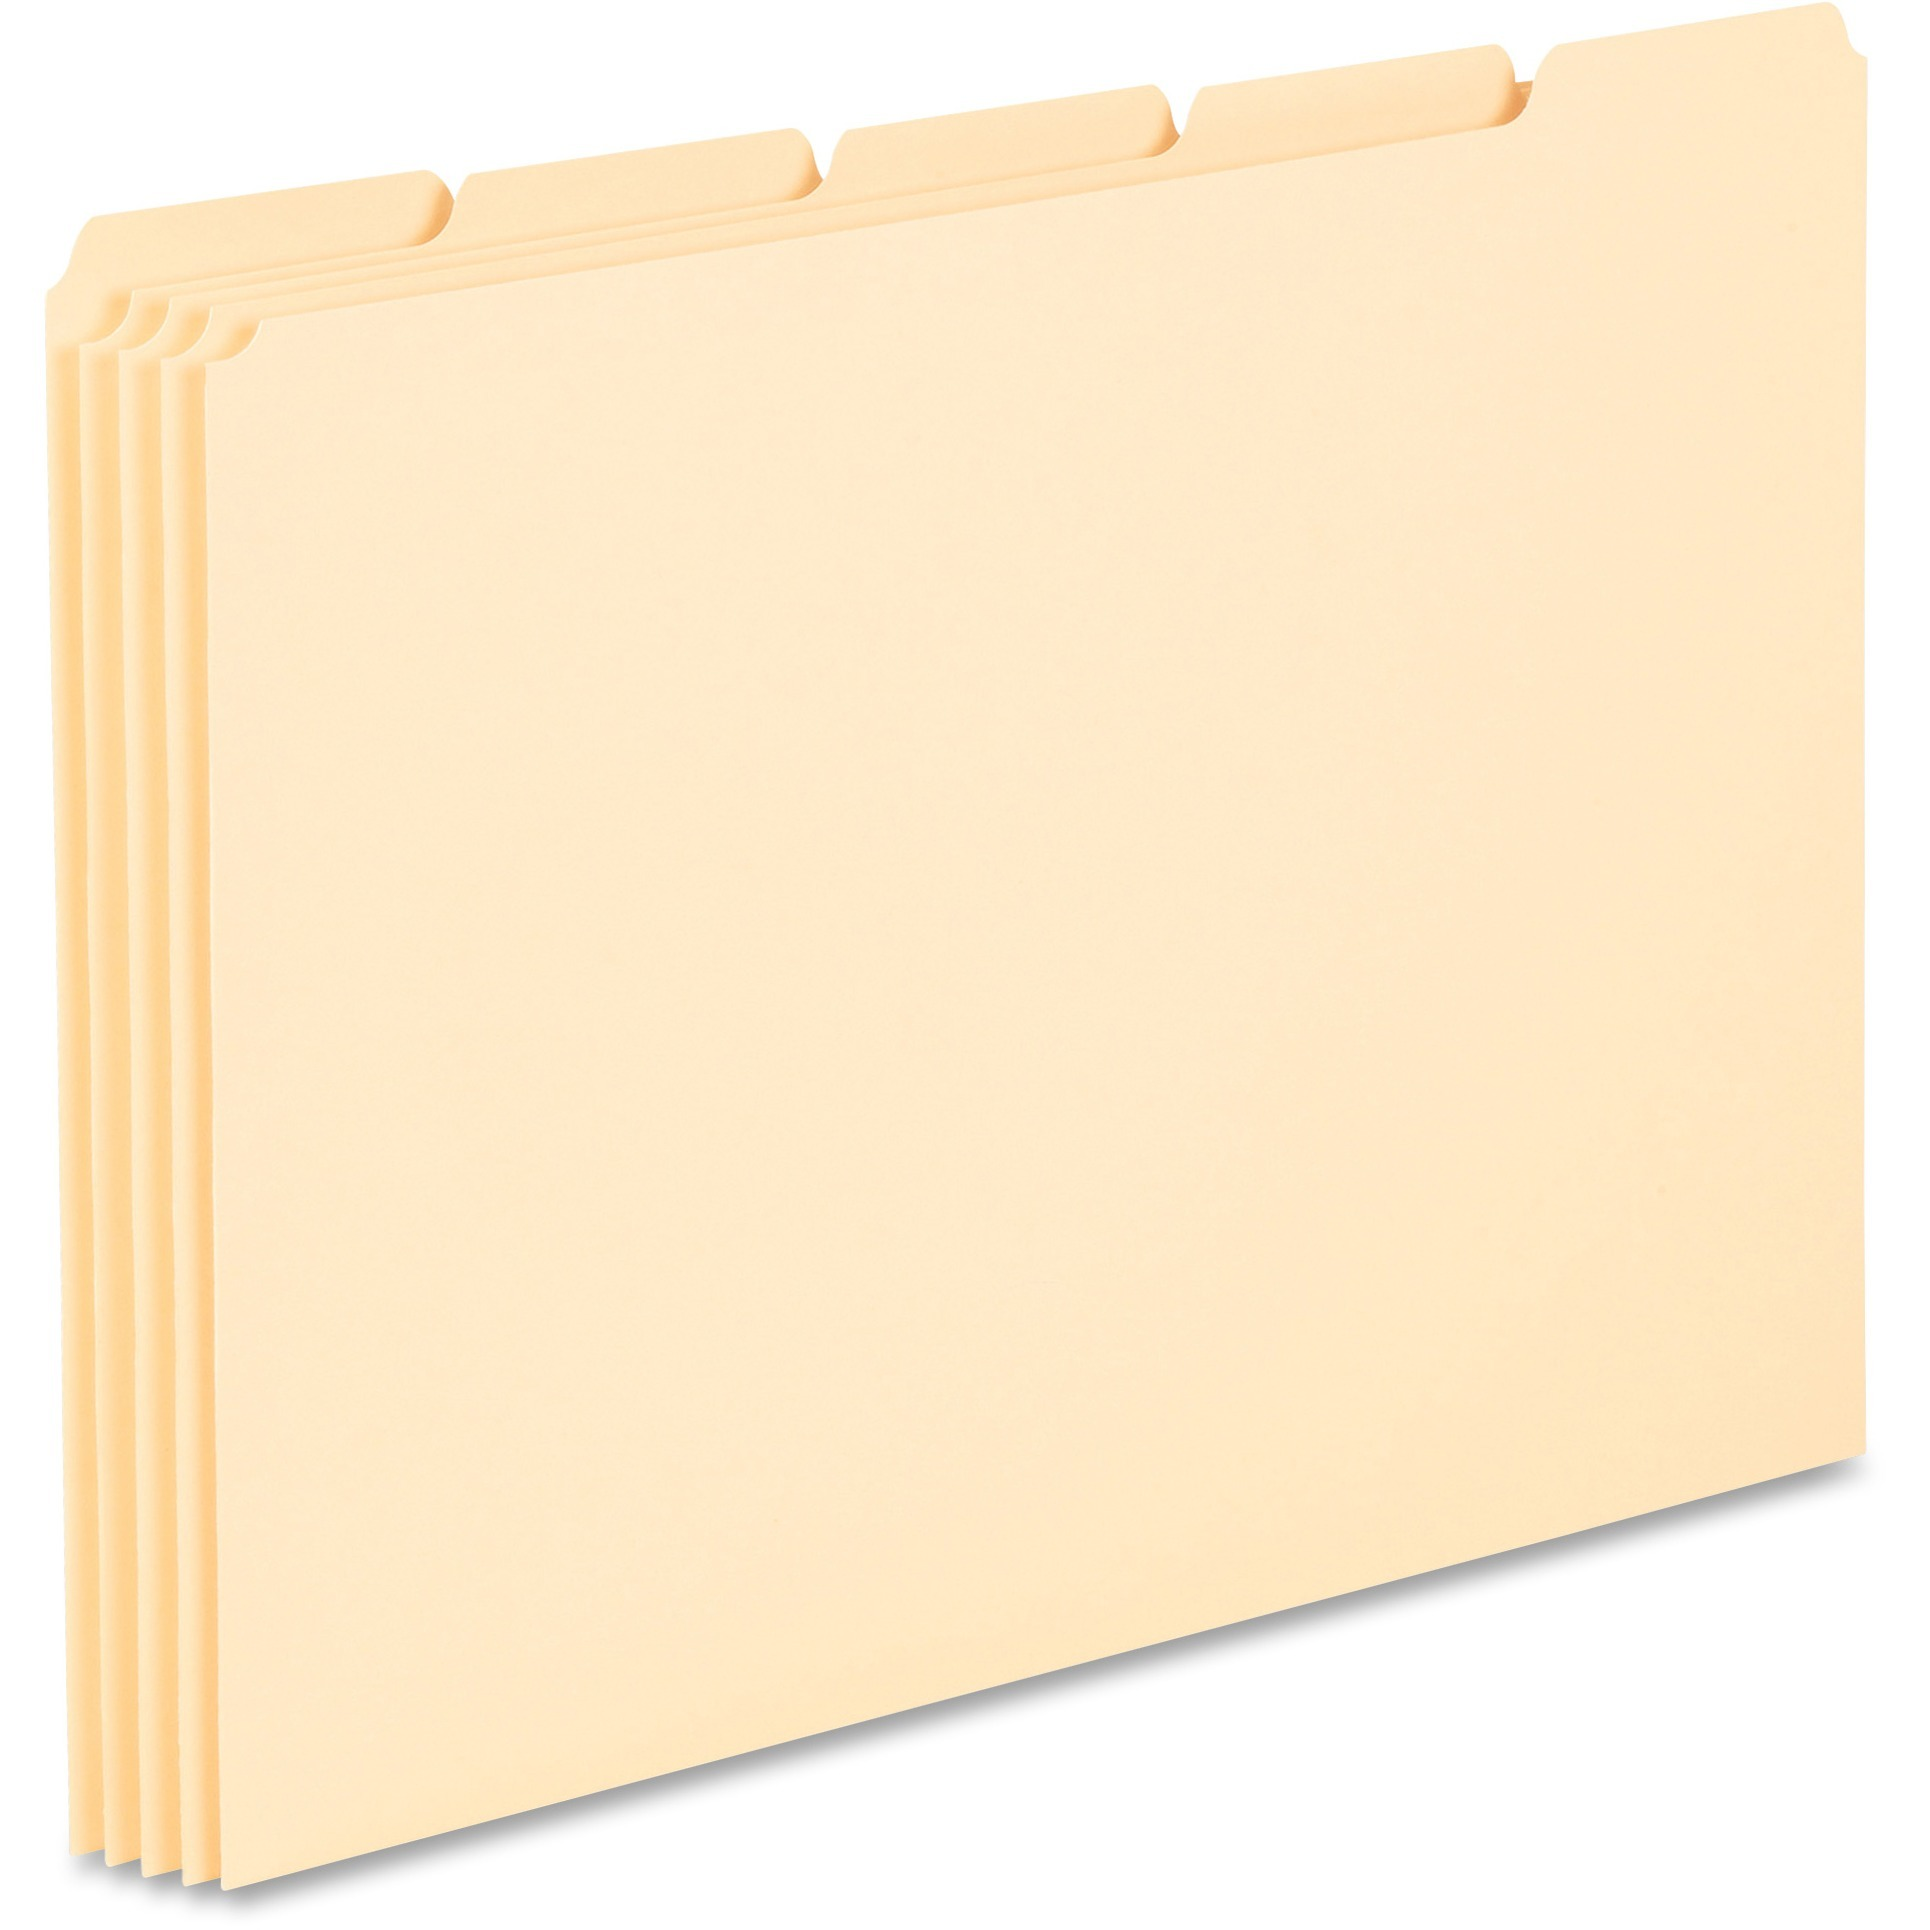 Pendaflex Blank Tab Manila File Guides by TOPS Products